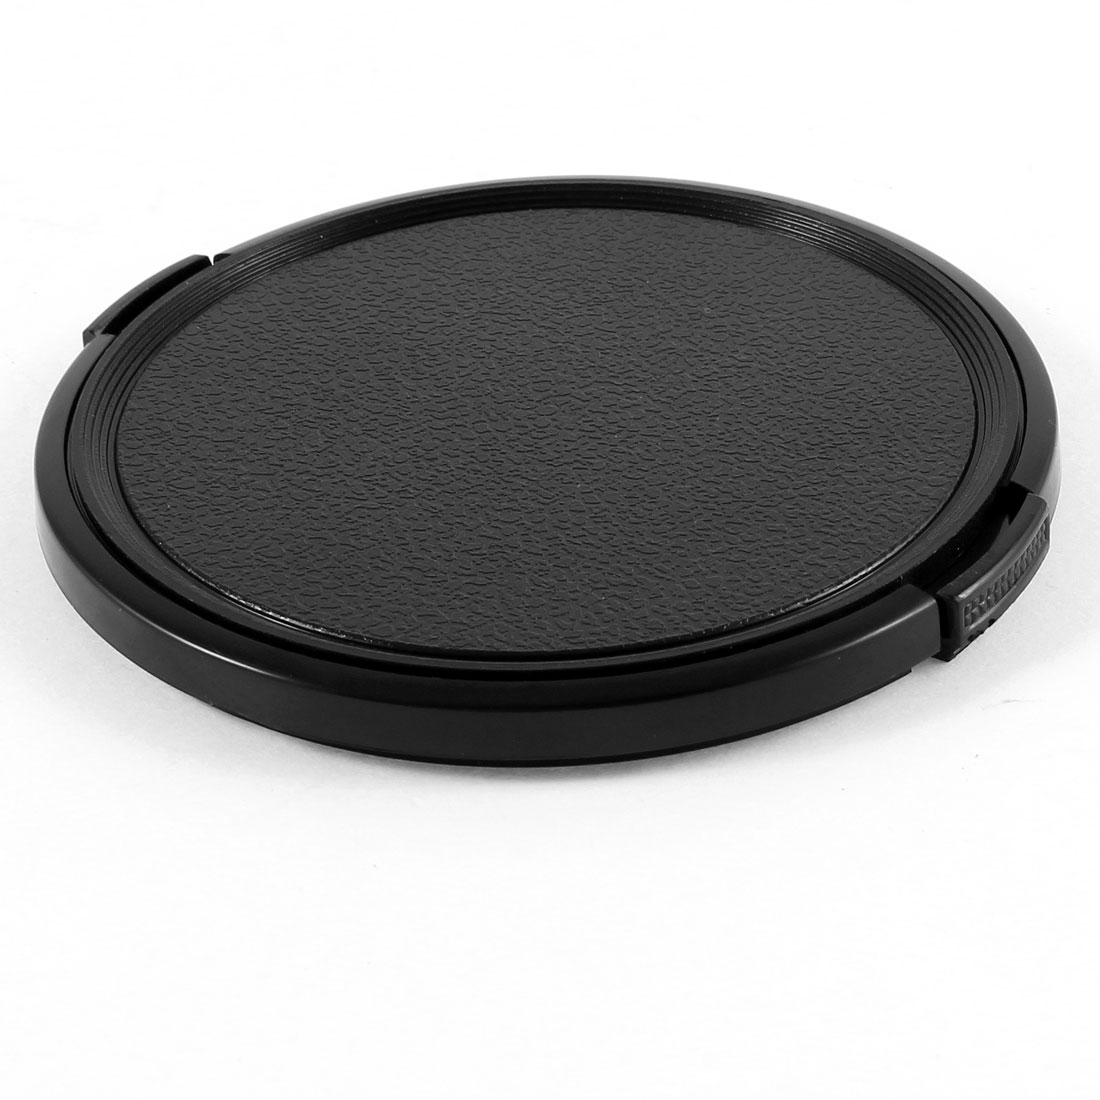 Univeral Camera 82mm Front Cap Cover for Lens Filter